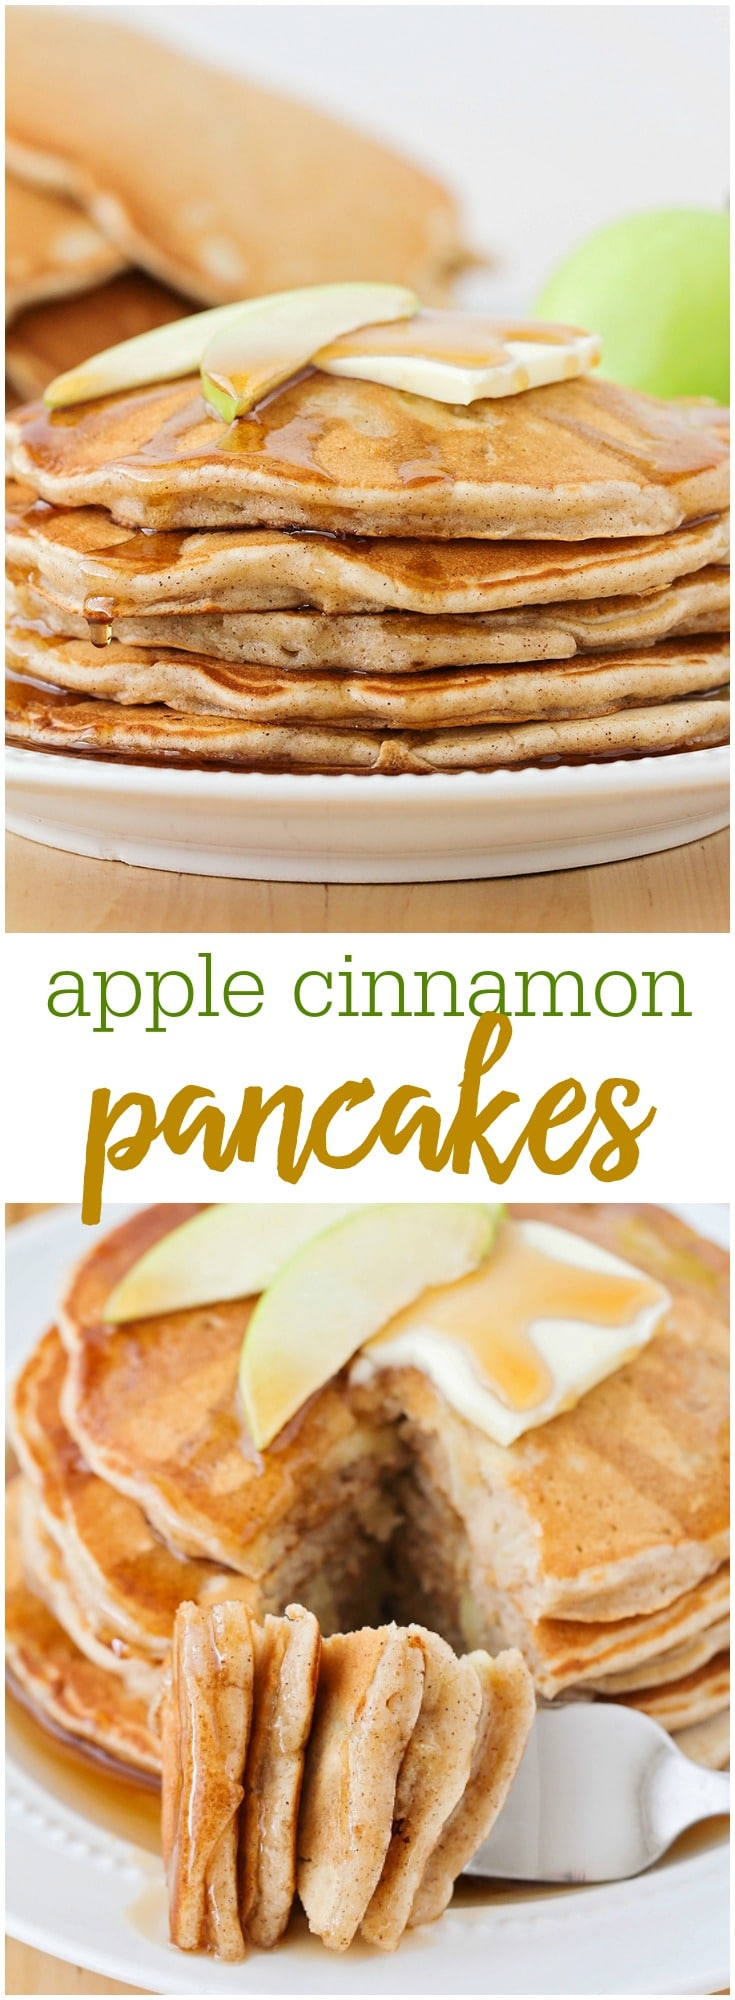 Delicious Cinnamon Apple Pancakes - this recipe is not only flavorful, but it's simple, so tasty and perfect for any breakfast!